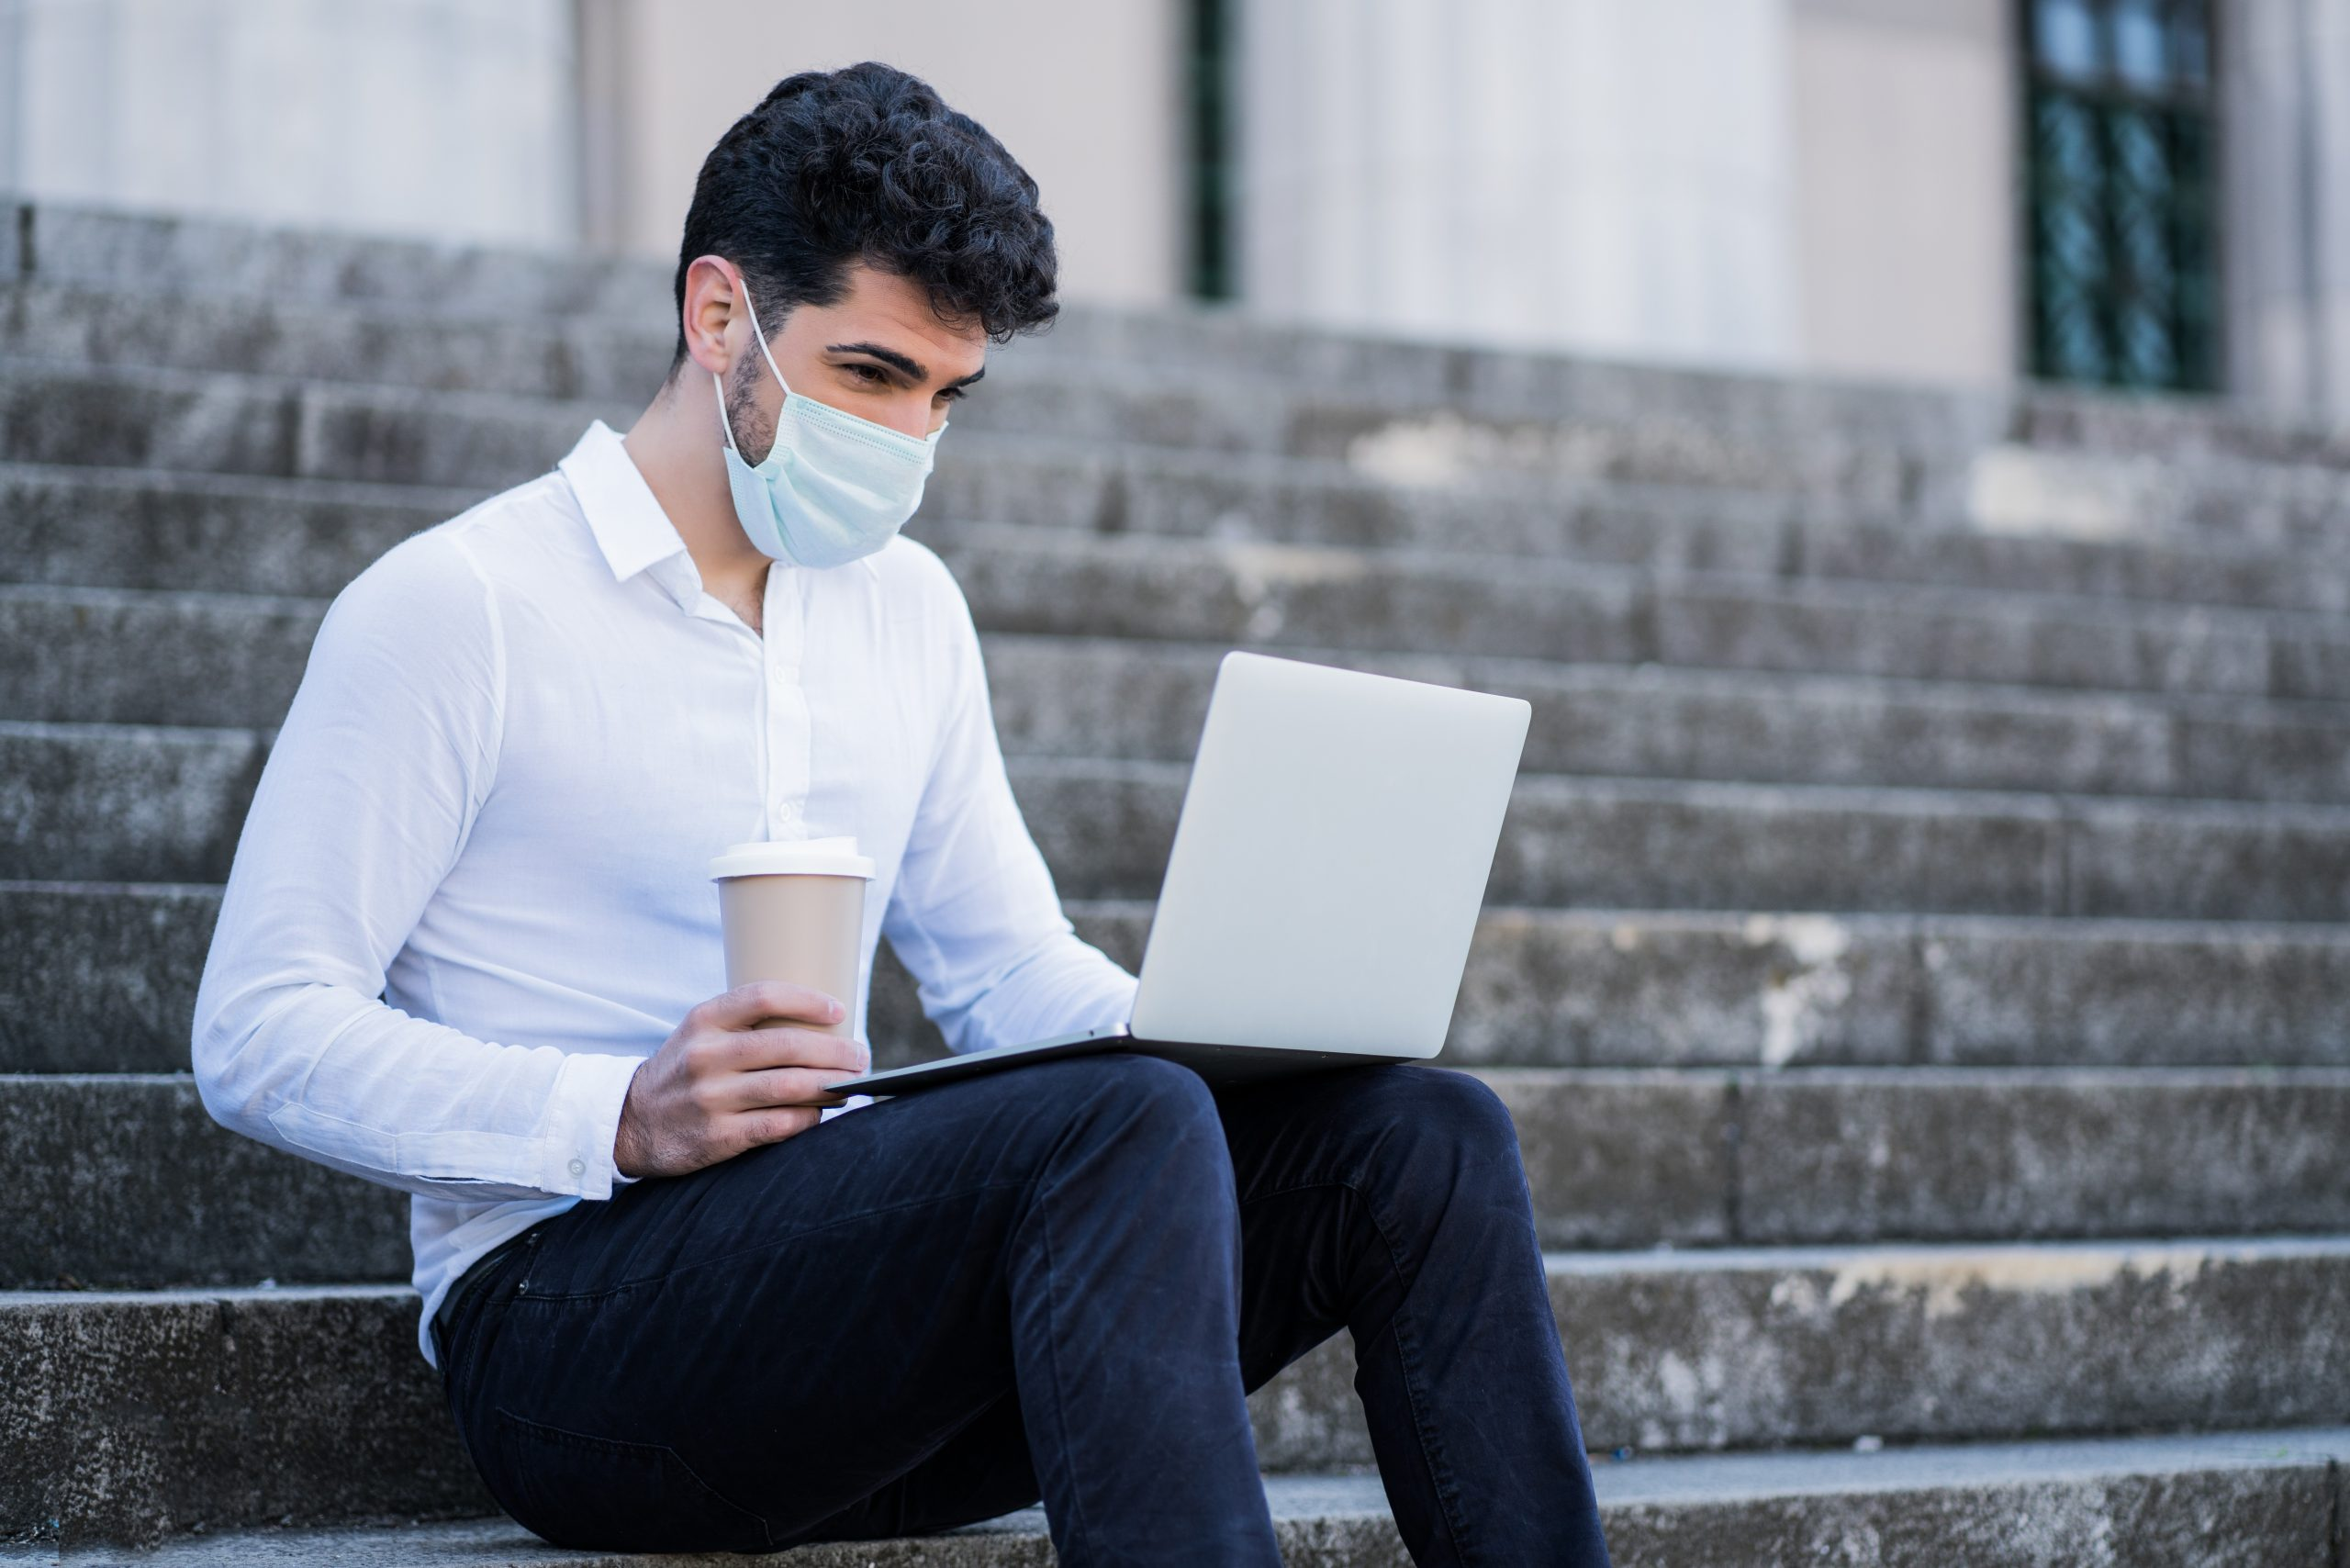 Portrait of business man wearing face mask and using his laptop while sitting on stairs outdoors. Business concept. New normal lifestyle concept.